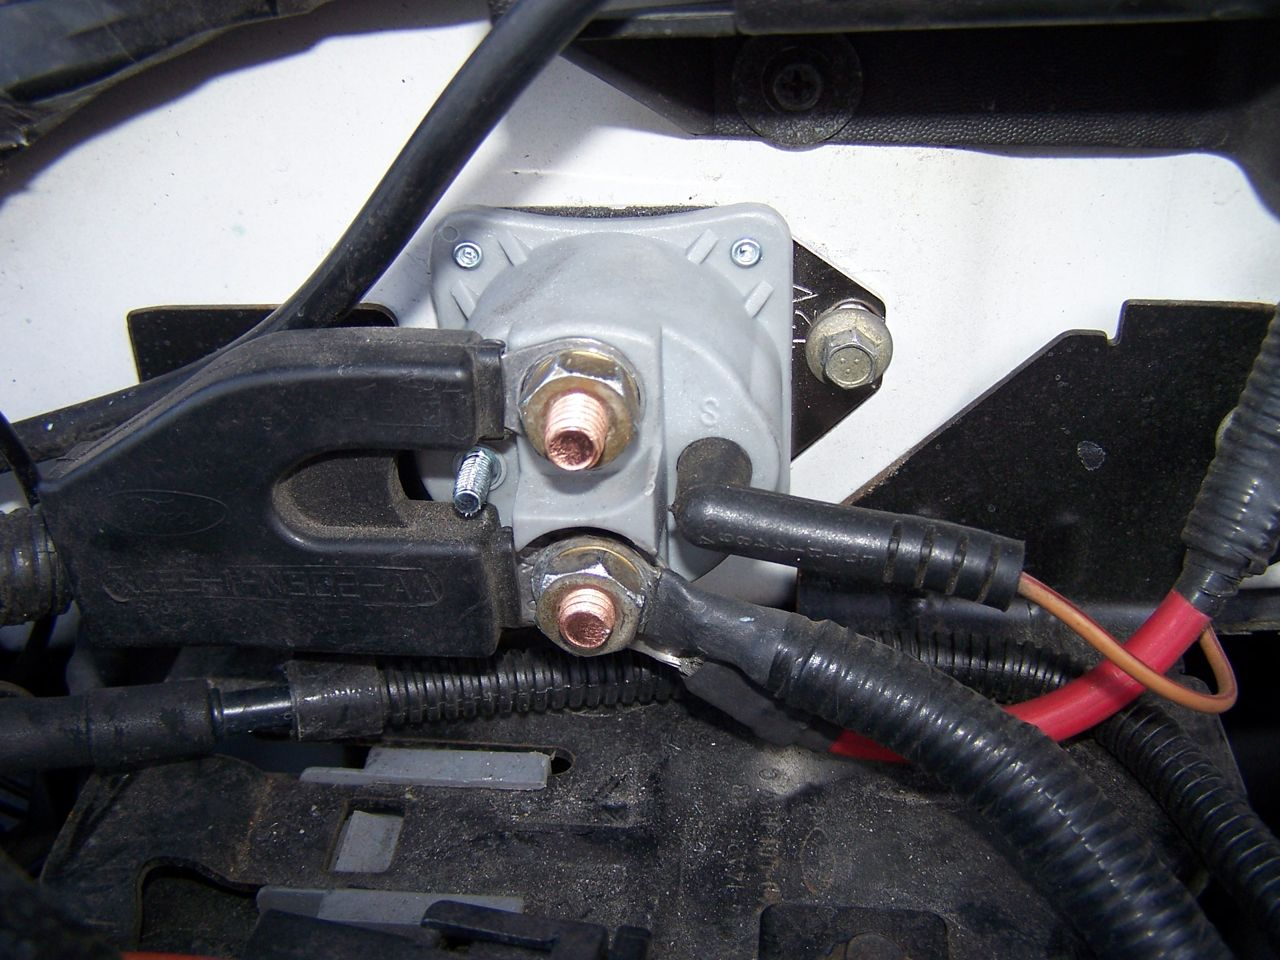 2009 12 03_193624_100_2918 i am looking for a diagram on the wiring of a 2001 ford expedition 2004 ford f150 starter solenoid wiring diagram at creativeand.co